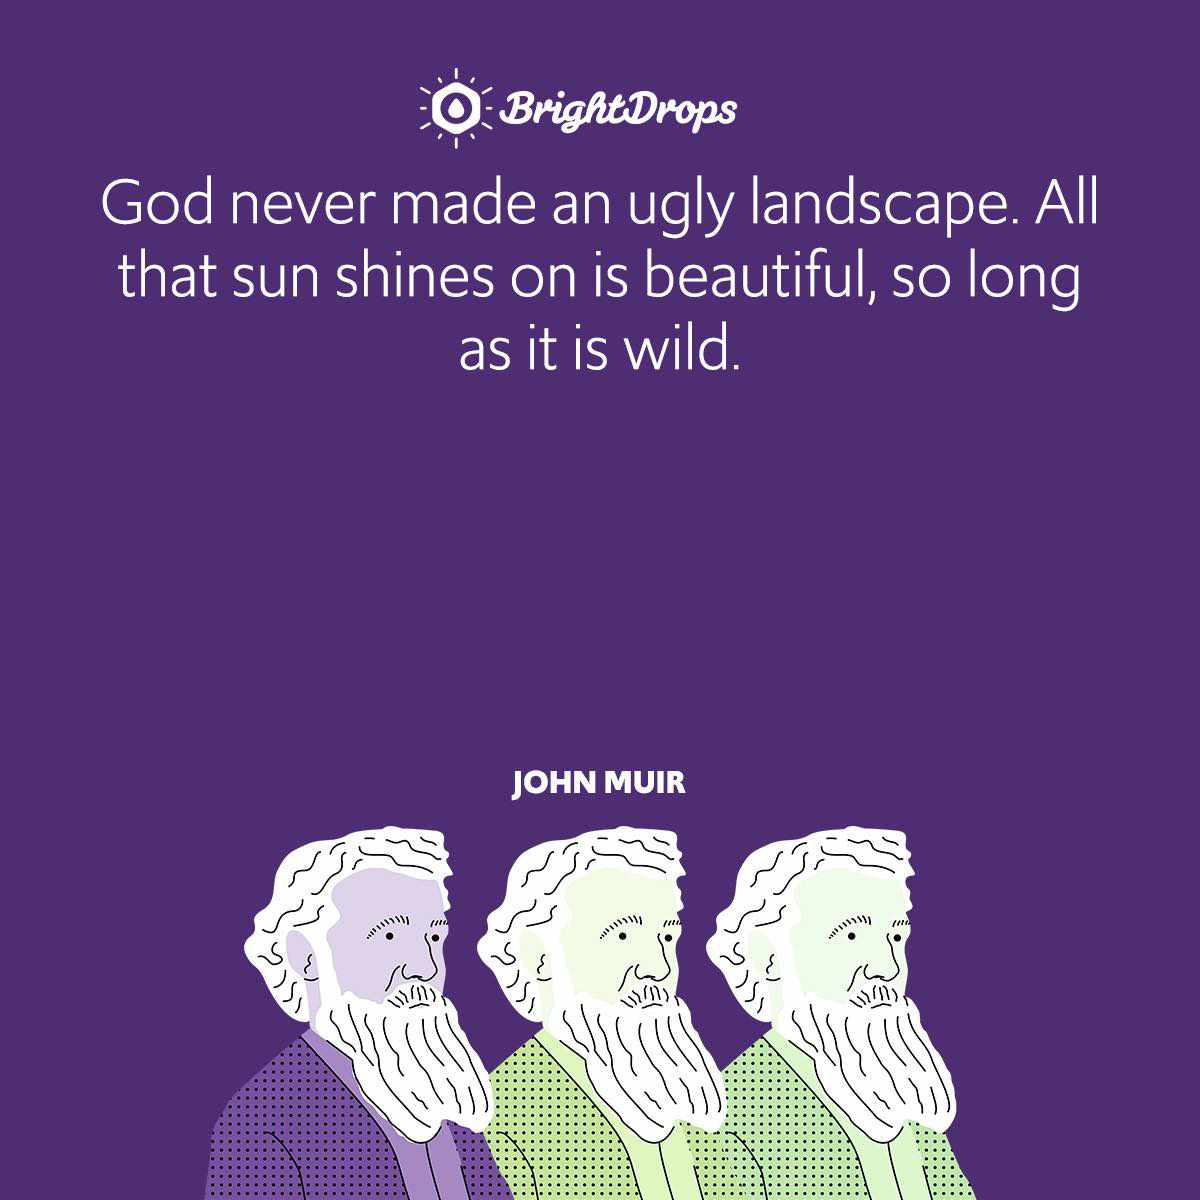 God never made an ugly landscape. All that sun shines on is beautiful, so long as it is wild.